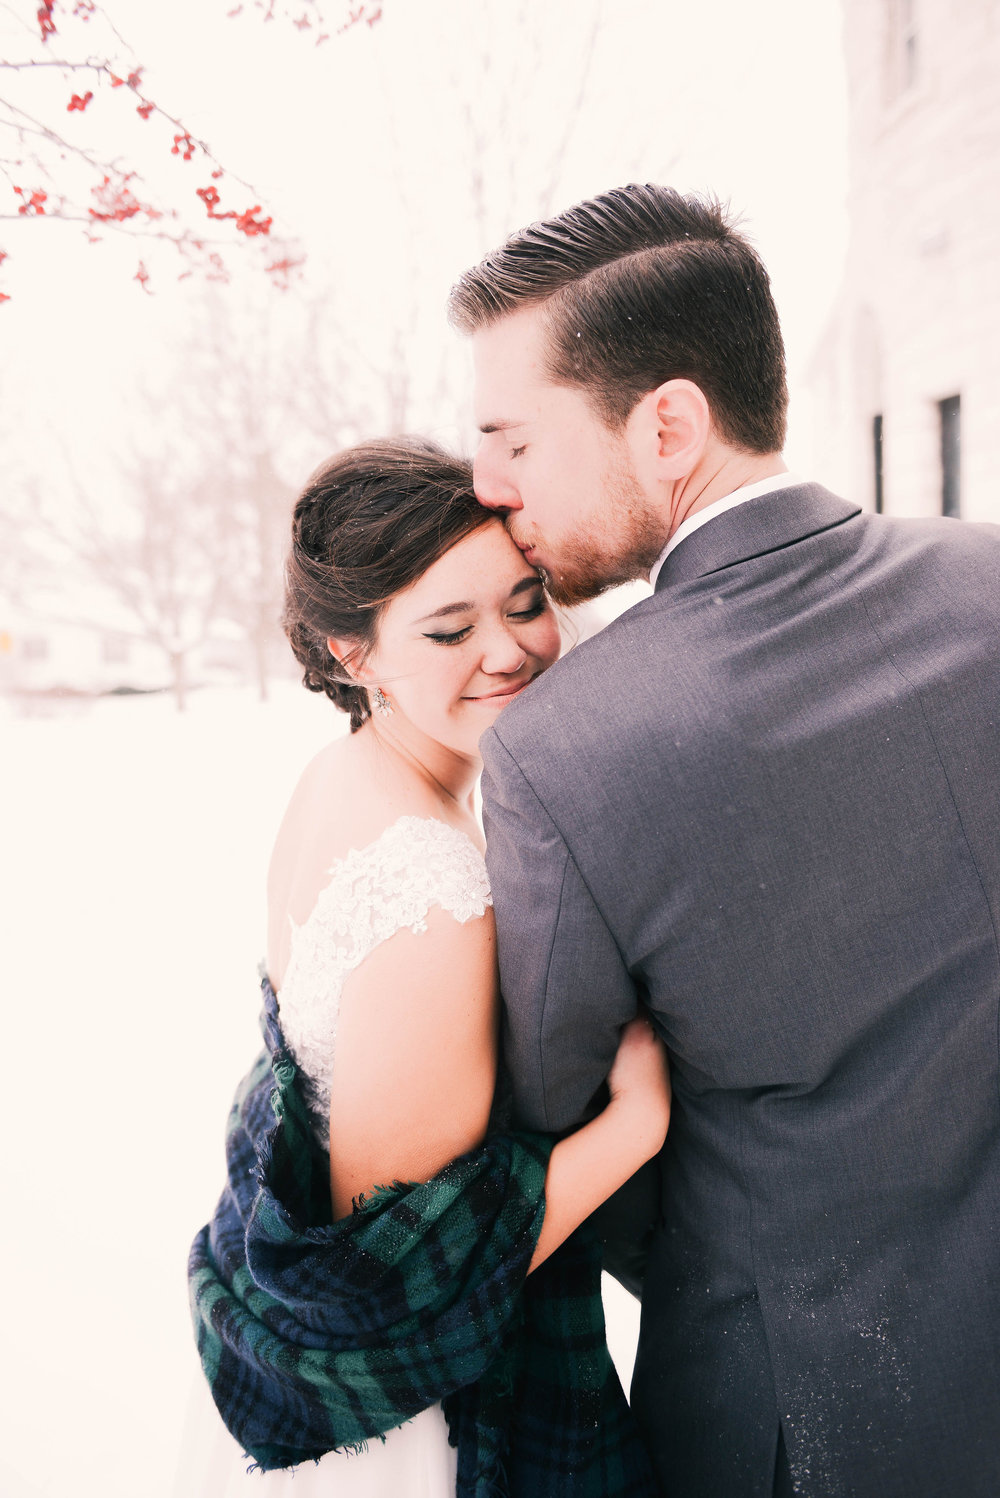 Winter 2017: Got married and worked in the Waterloo Community School District.